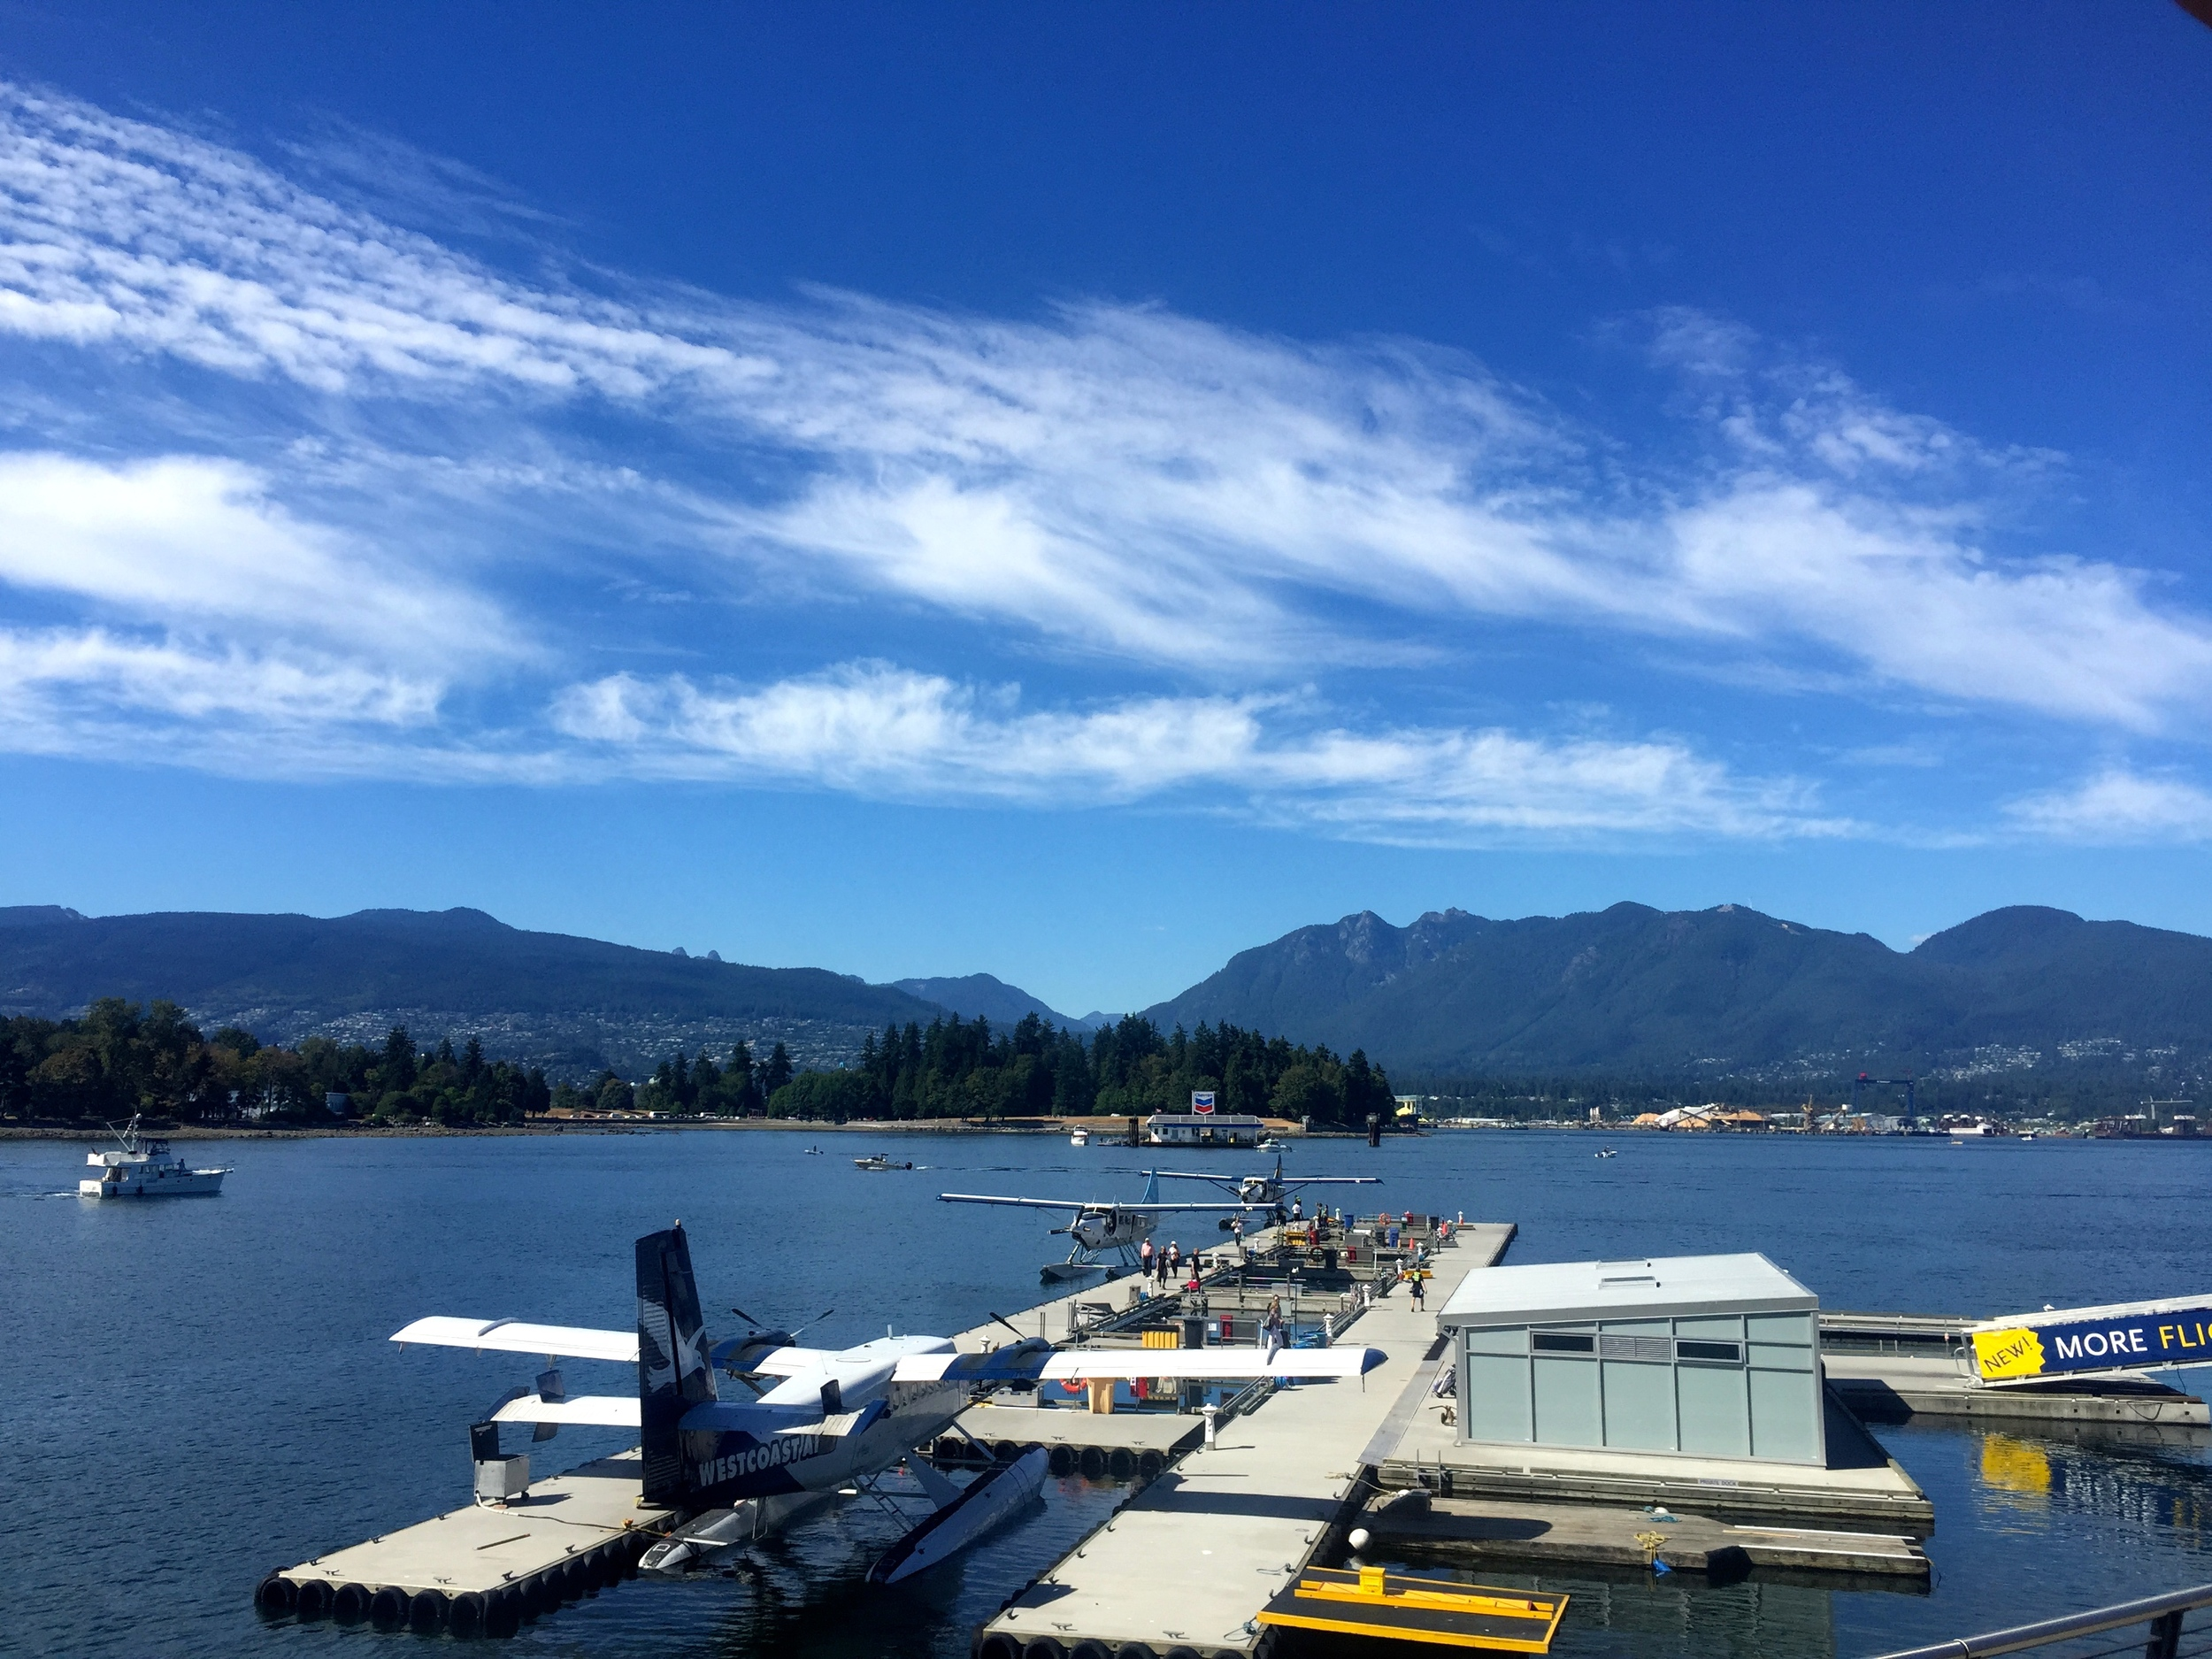 Waterside of Vancouver